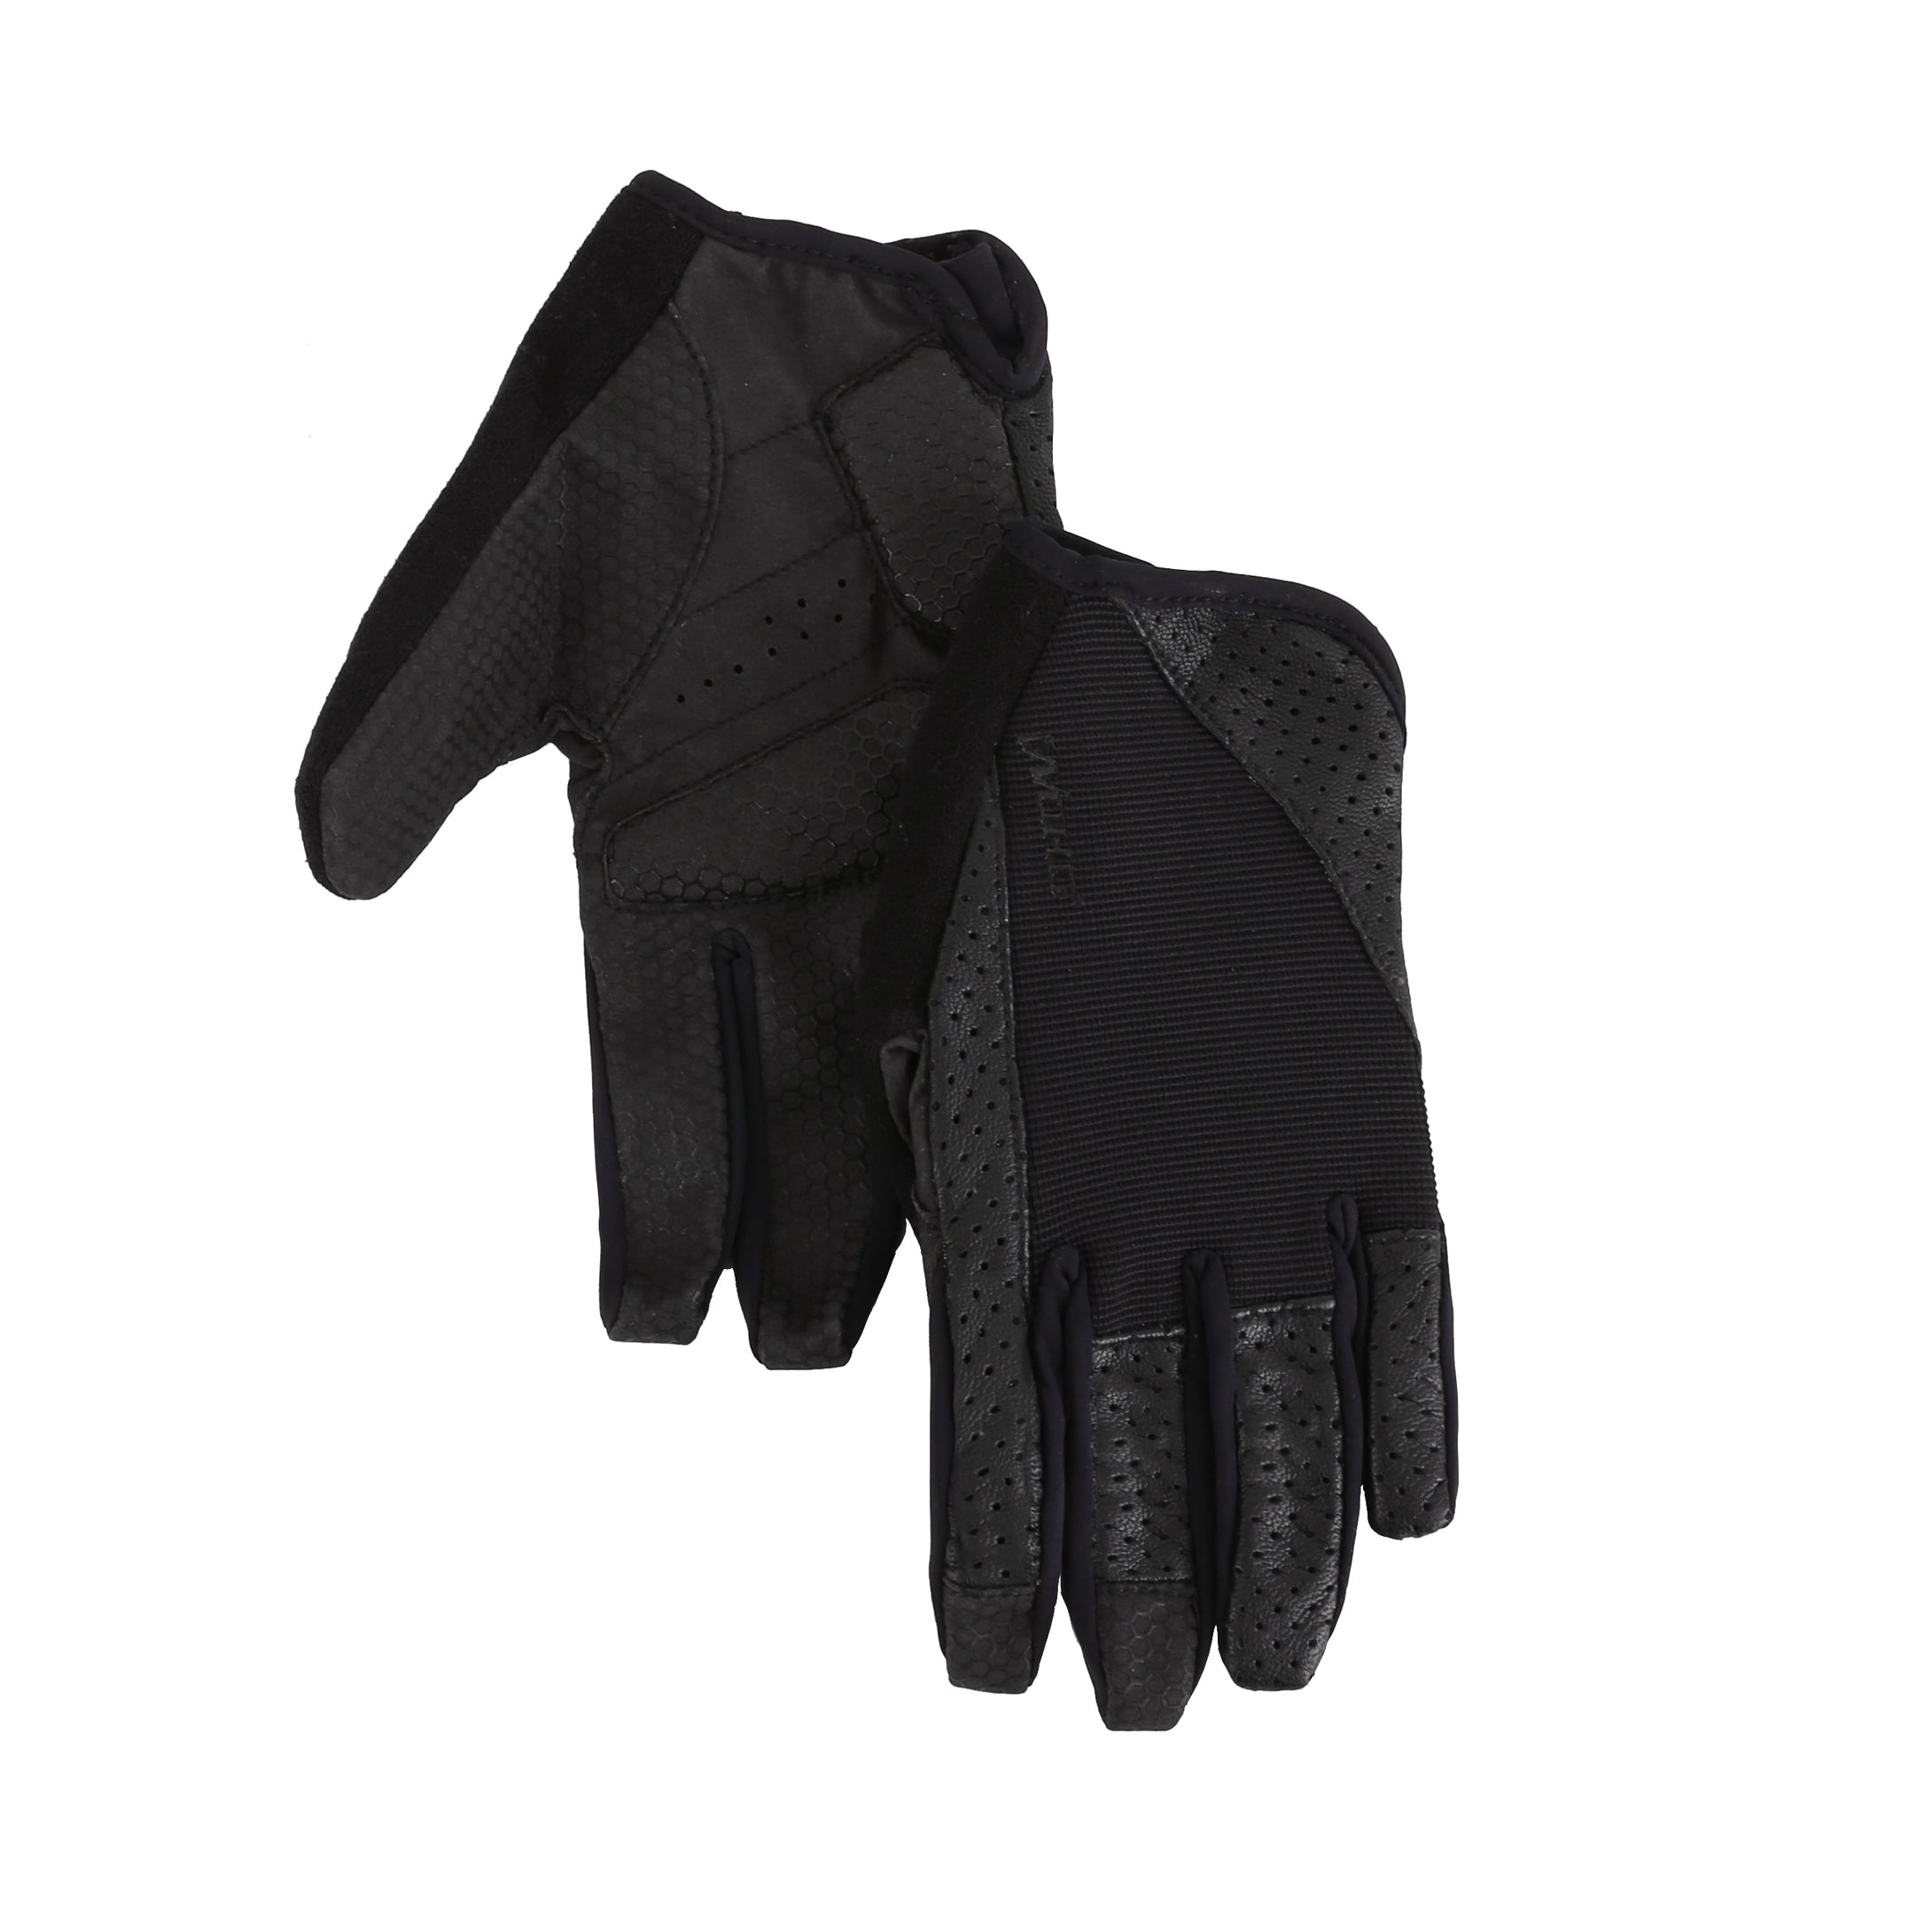 Club Racer leather long finger gloves